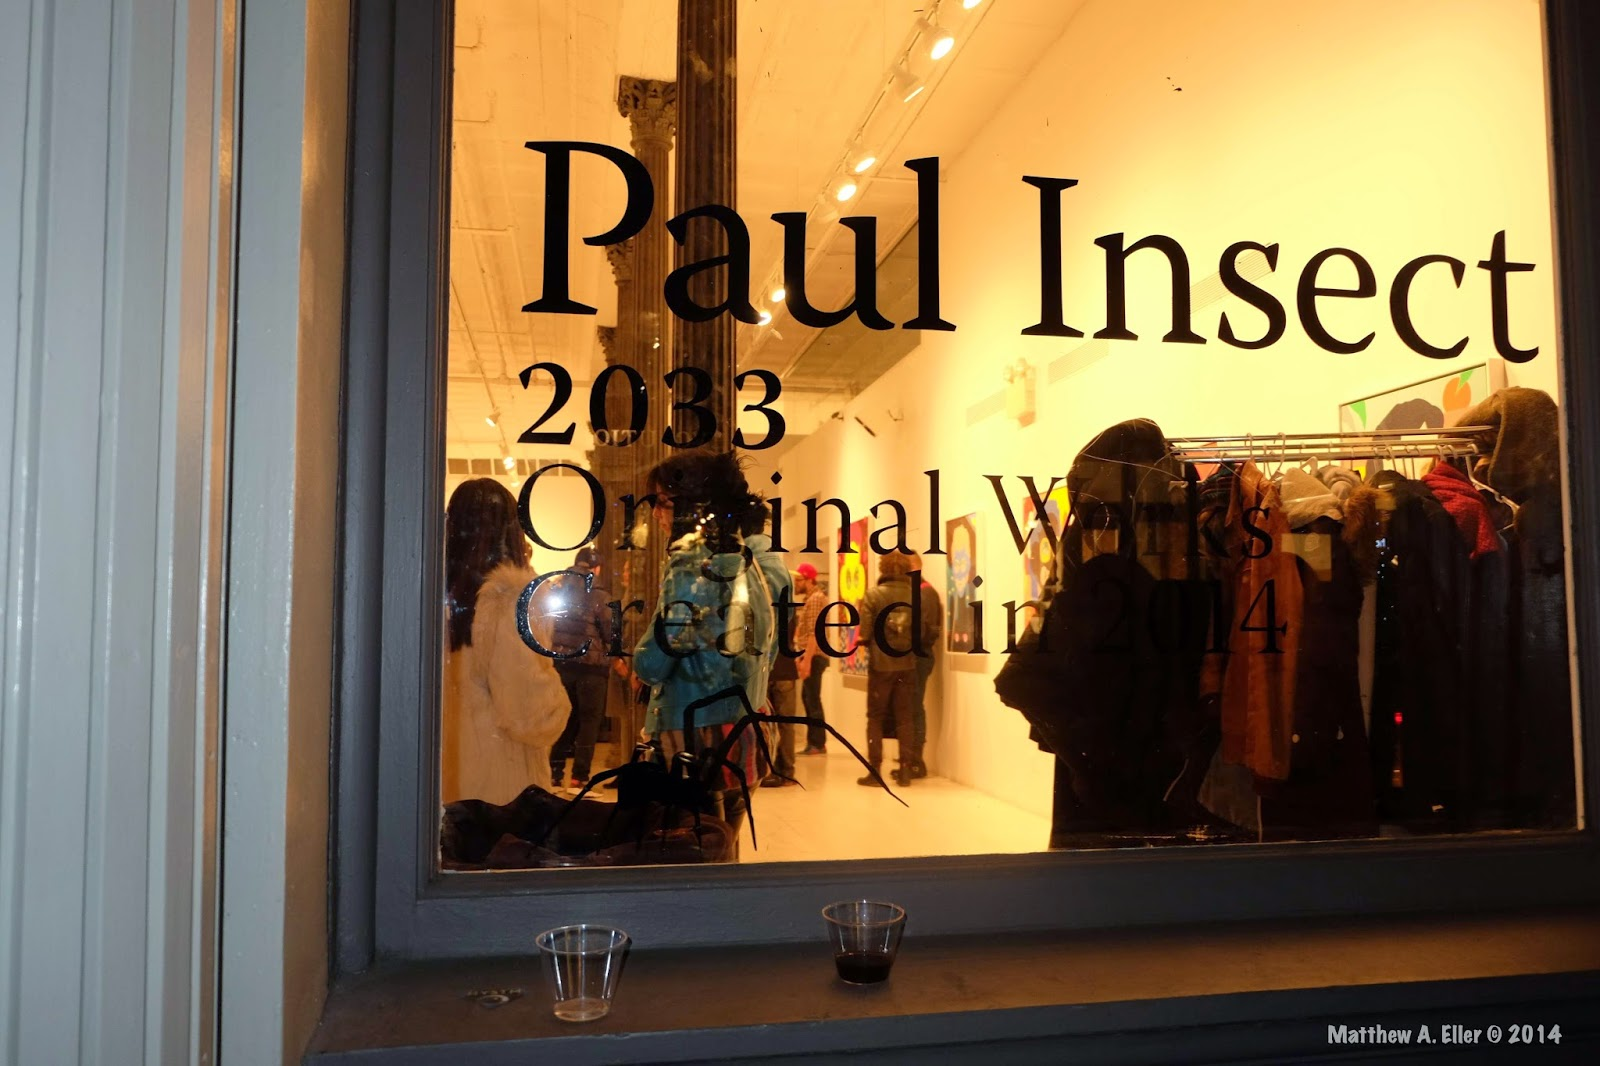 """Coverage: Paul Insect """"2033 Original Works"""" Exhibition @ NYC's Allouche Gallery"""